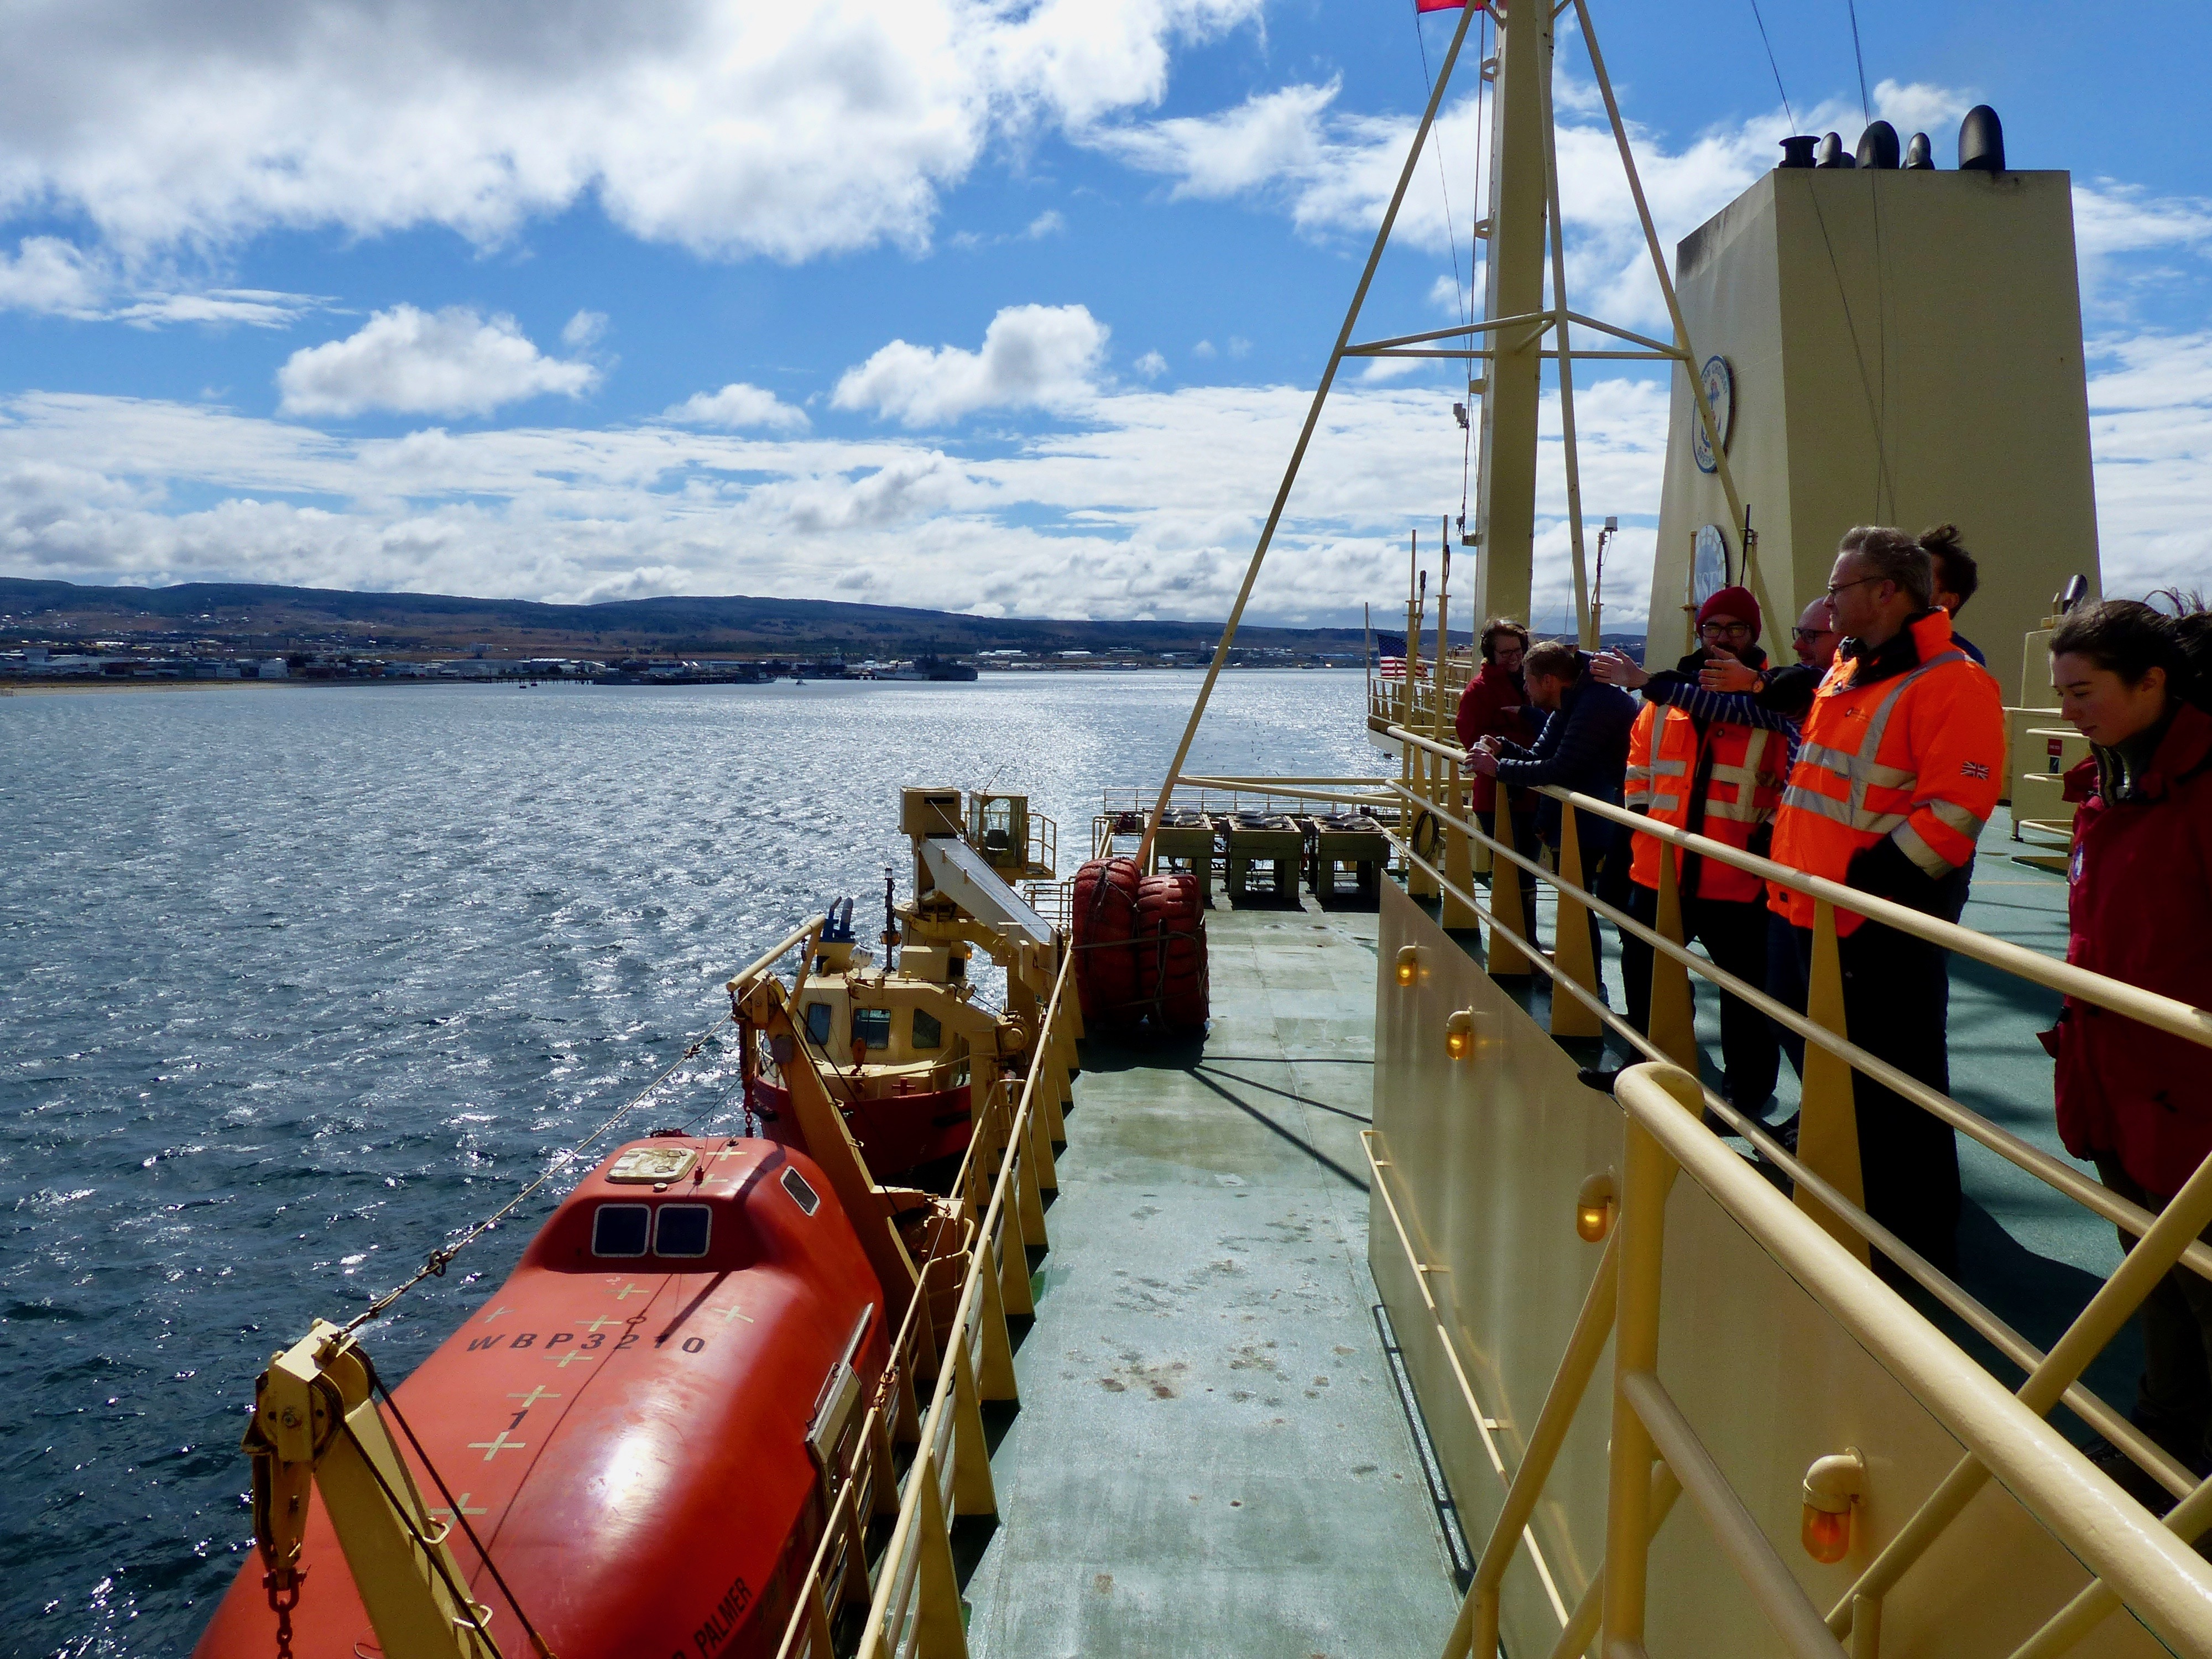 The Palmer departs Punta Arenas on its voyage.